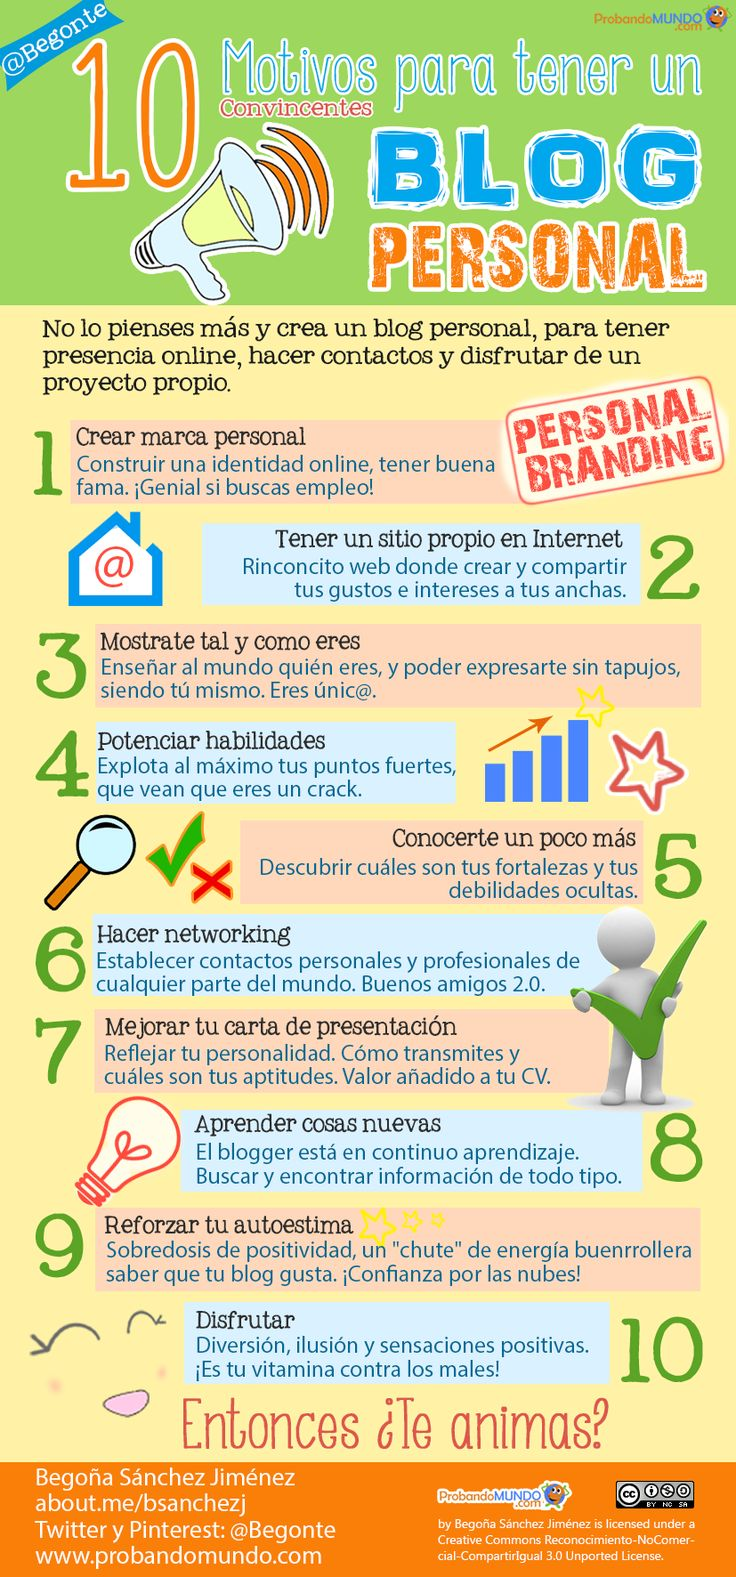 10 beneficios de tener un #Blog personal #infografia #infographic #marketing